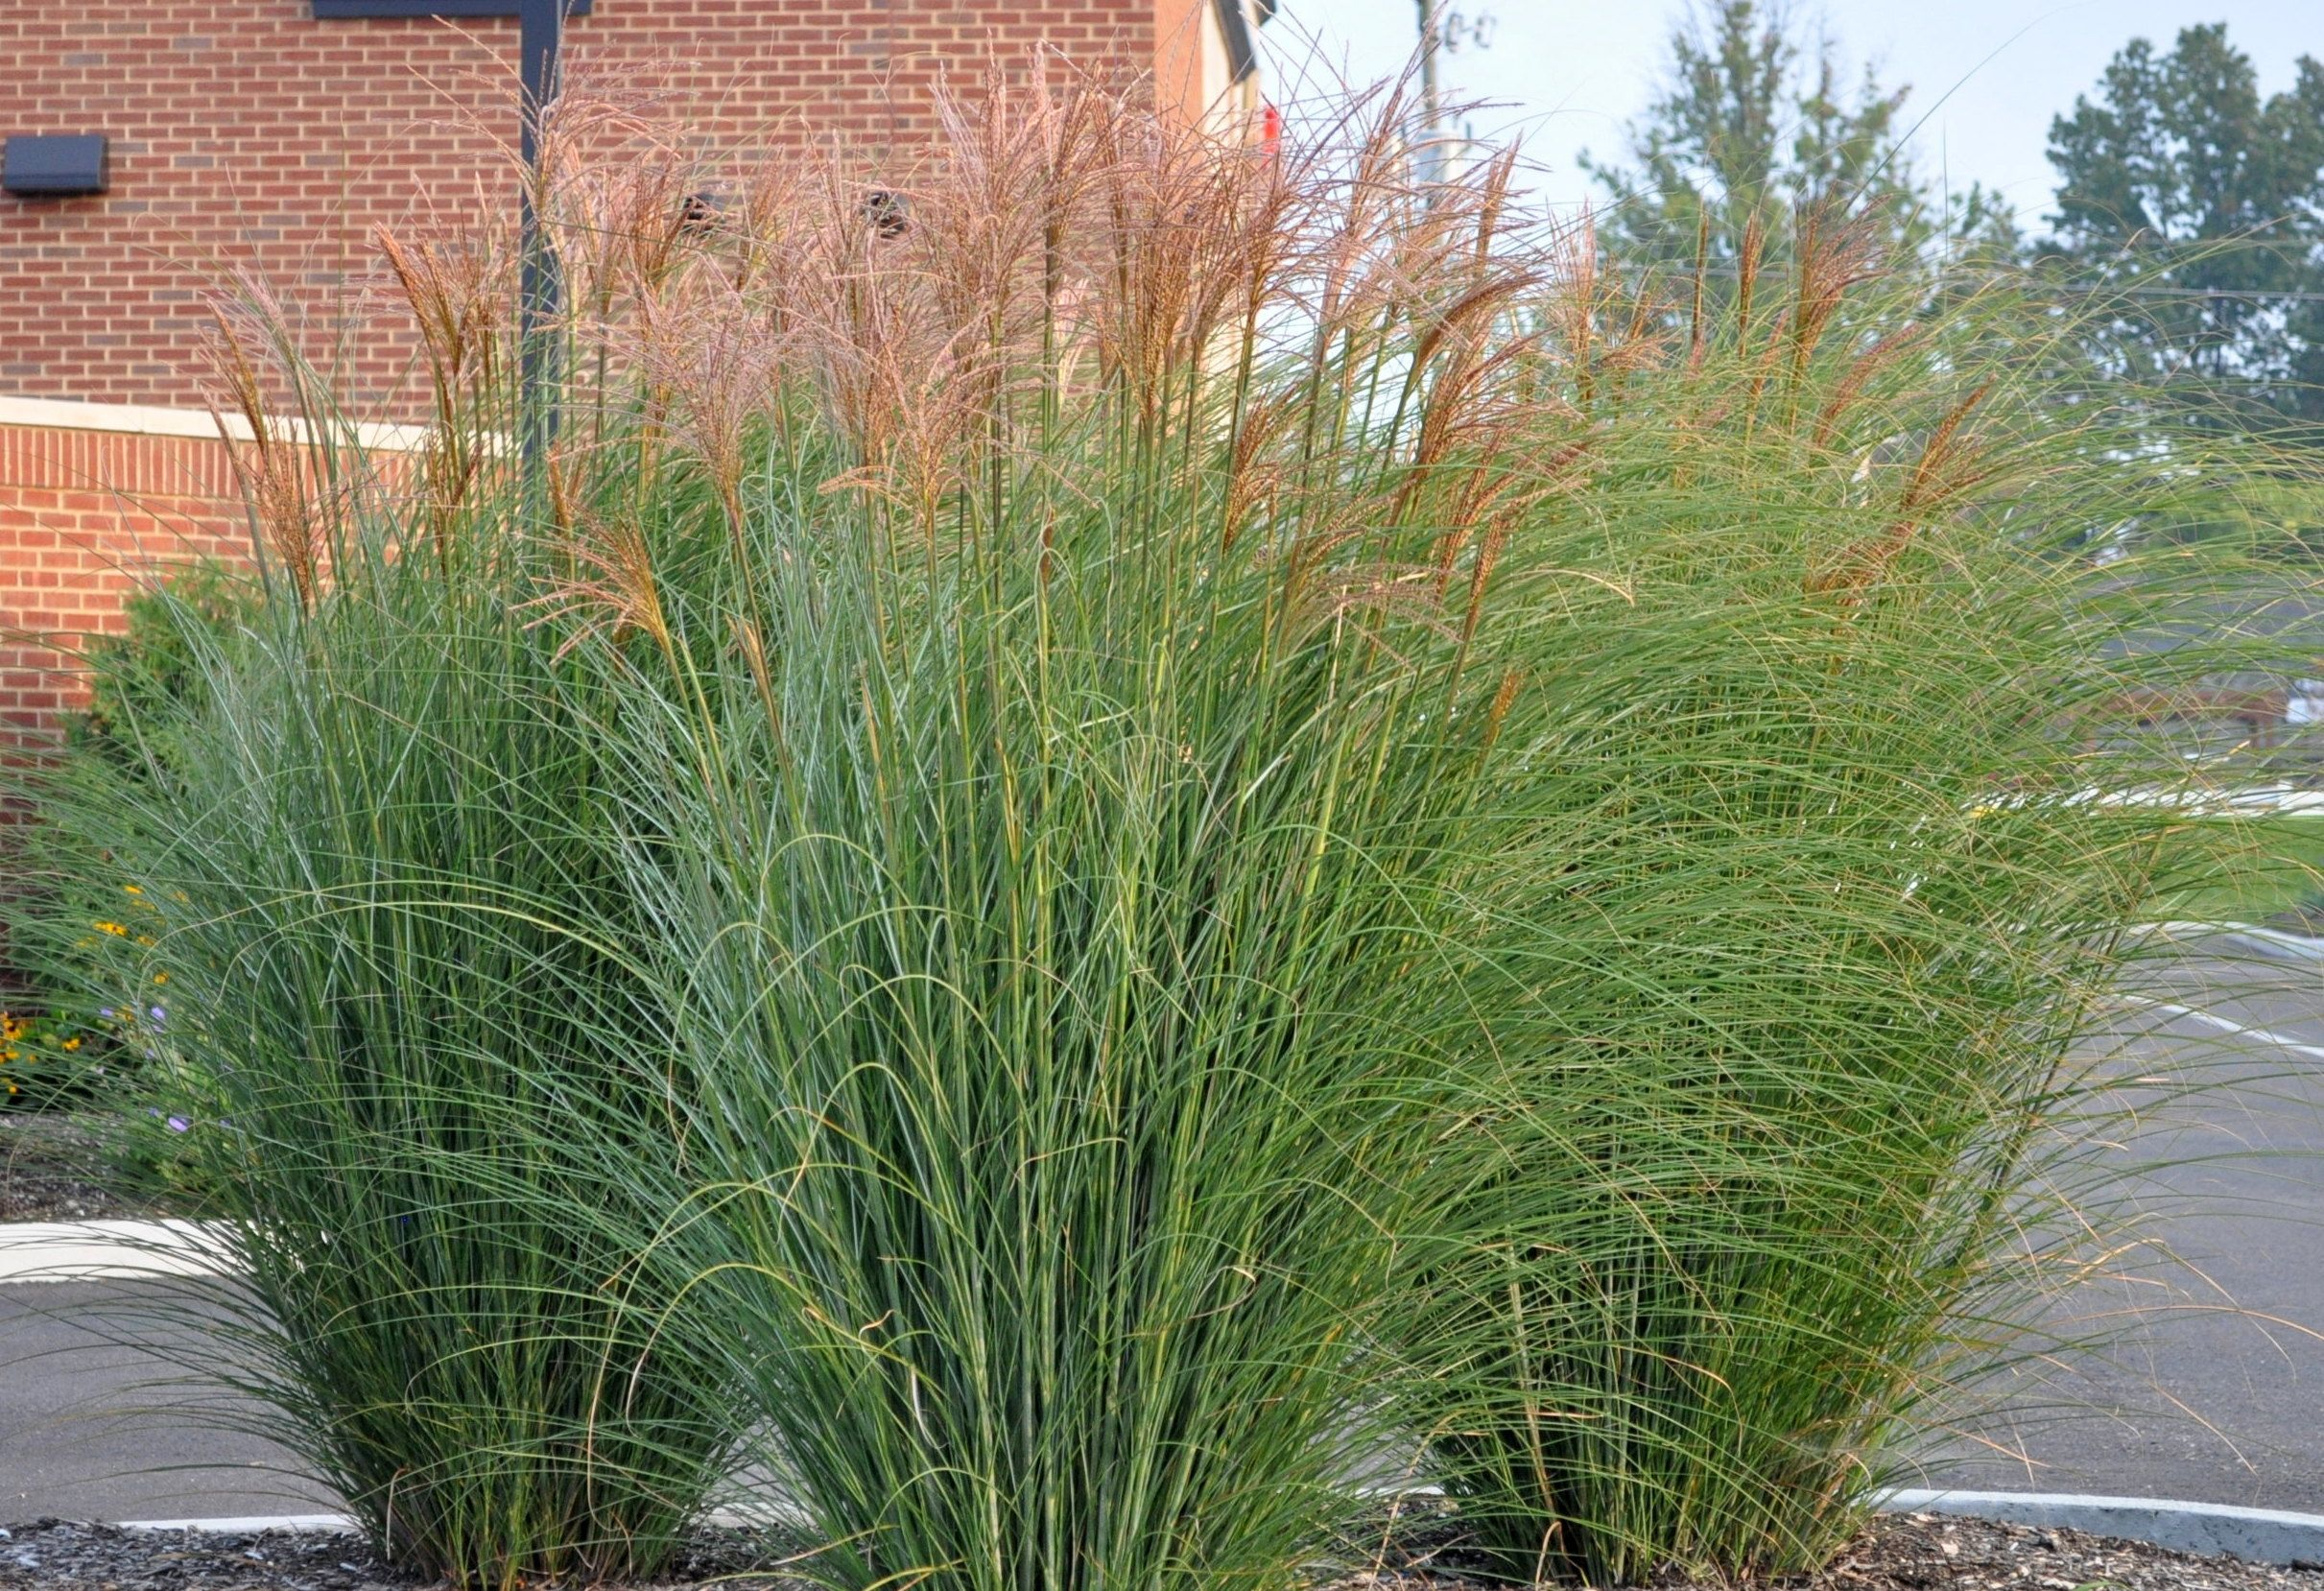 Pin By Millcreek Gardens On Ornamental Grasses Ornamental Grasses Grasses Landscaping Woodland Garden